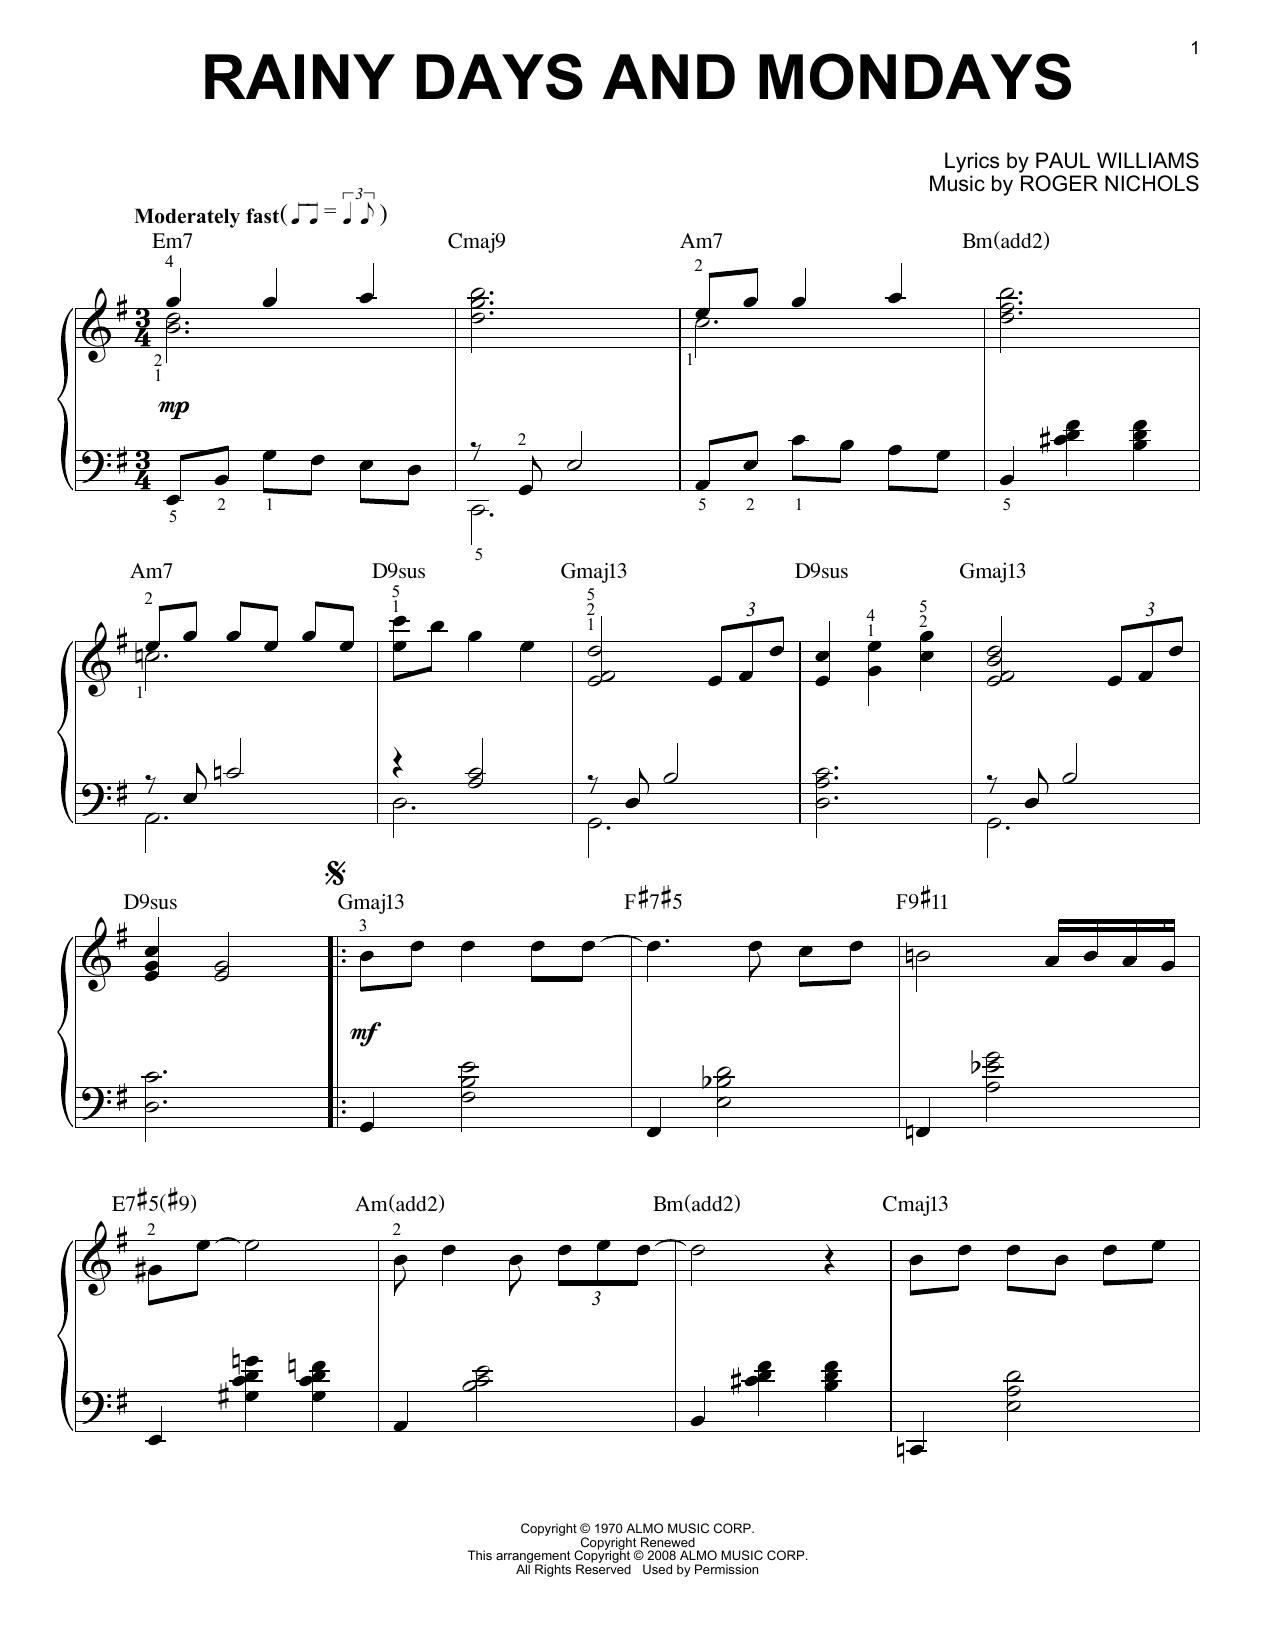 Carpenters Rainy Days And Mondays [Jazz version] arr. Brent Edstrom Sheet  Music Notes, Chords   Download Printable Piano Solo PDF Score   SKU 15